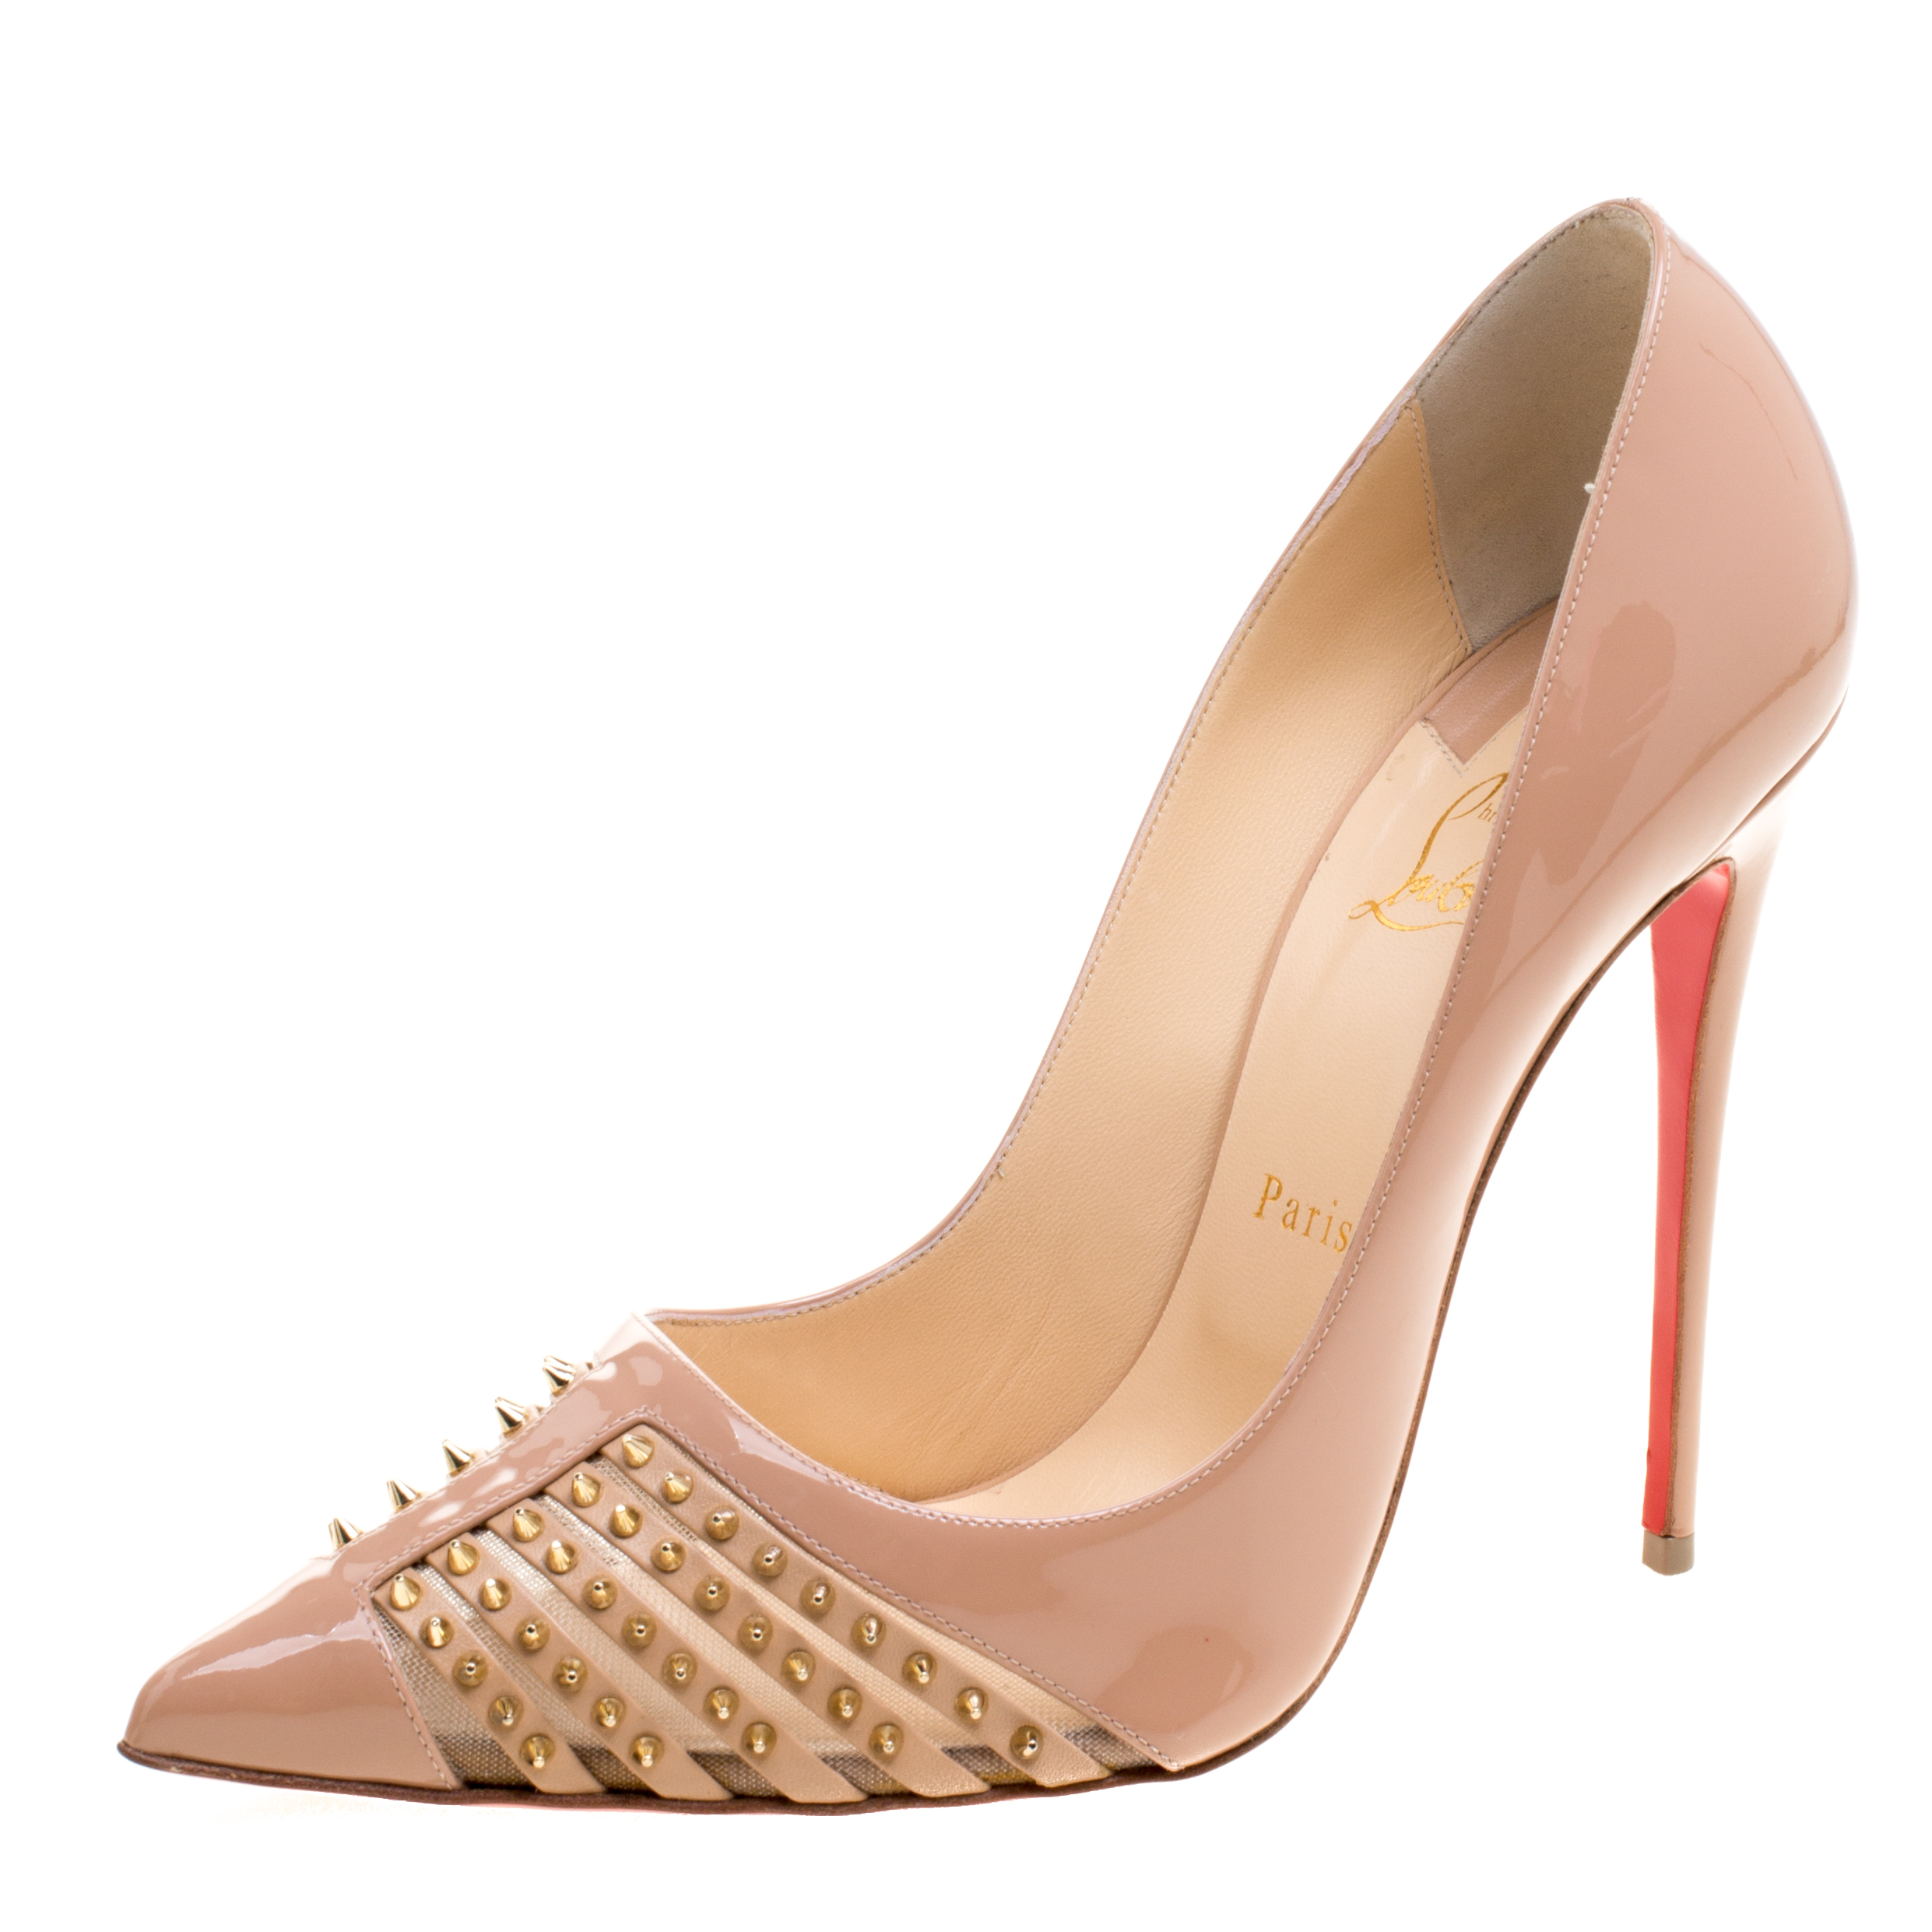 newest 316fe 1496e Christian Louboutin Beige Patent Leather Bareta Spikes Pointed Toe Pumps  Size 41